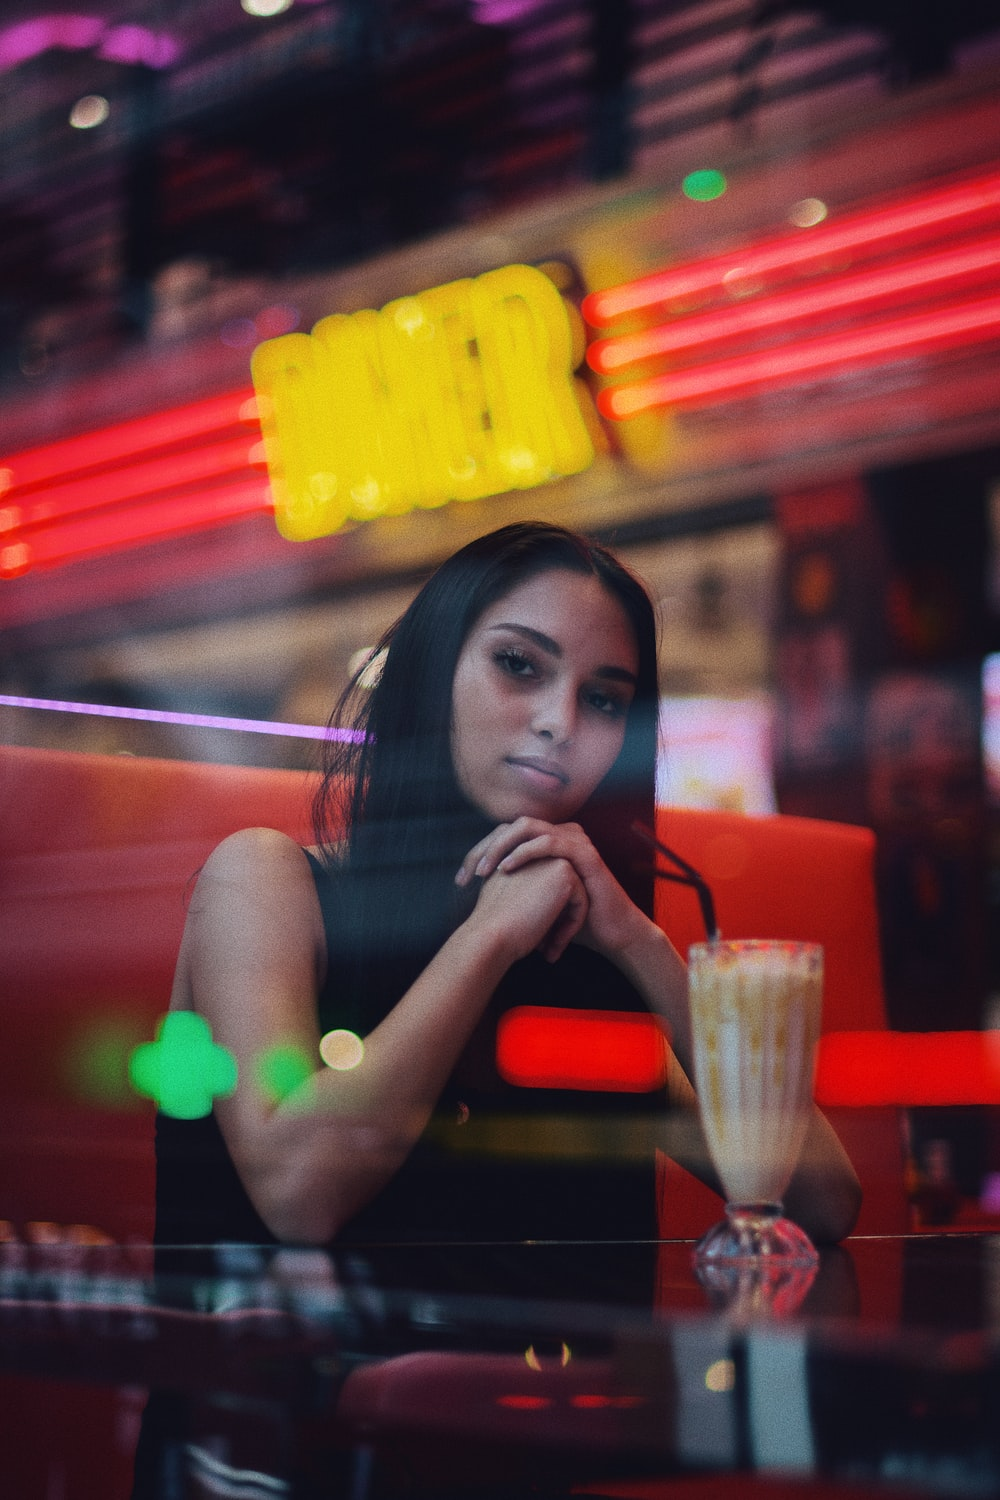 woman in front of shake in pilsner glass